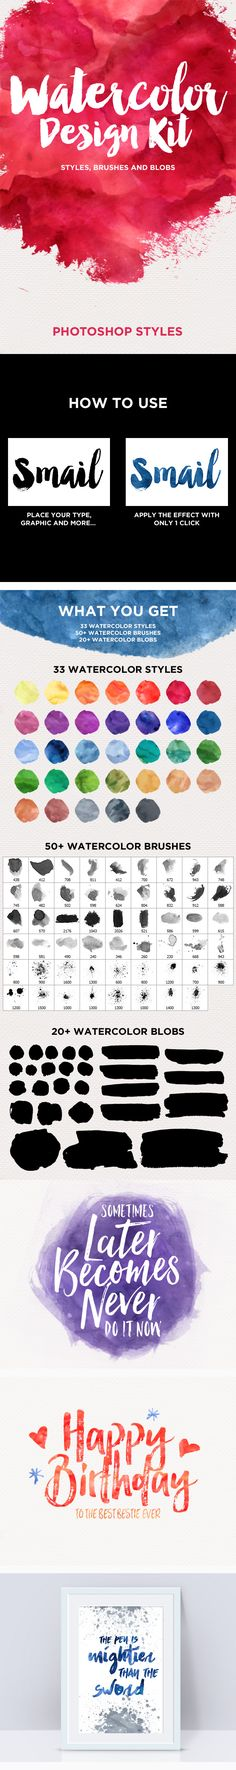 Watercolor Design Kit - Photoshop Styles. Download here: http://graphicriver.net/item/watercolor-design-kit-photoshop-styles/16181503?ref=ksioks